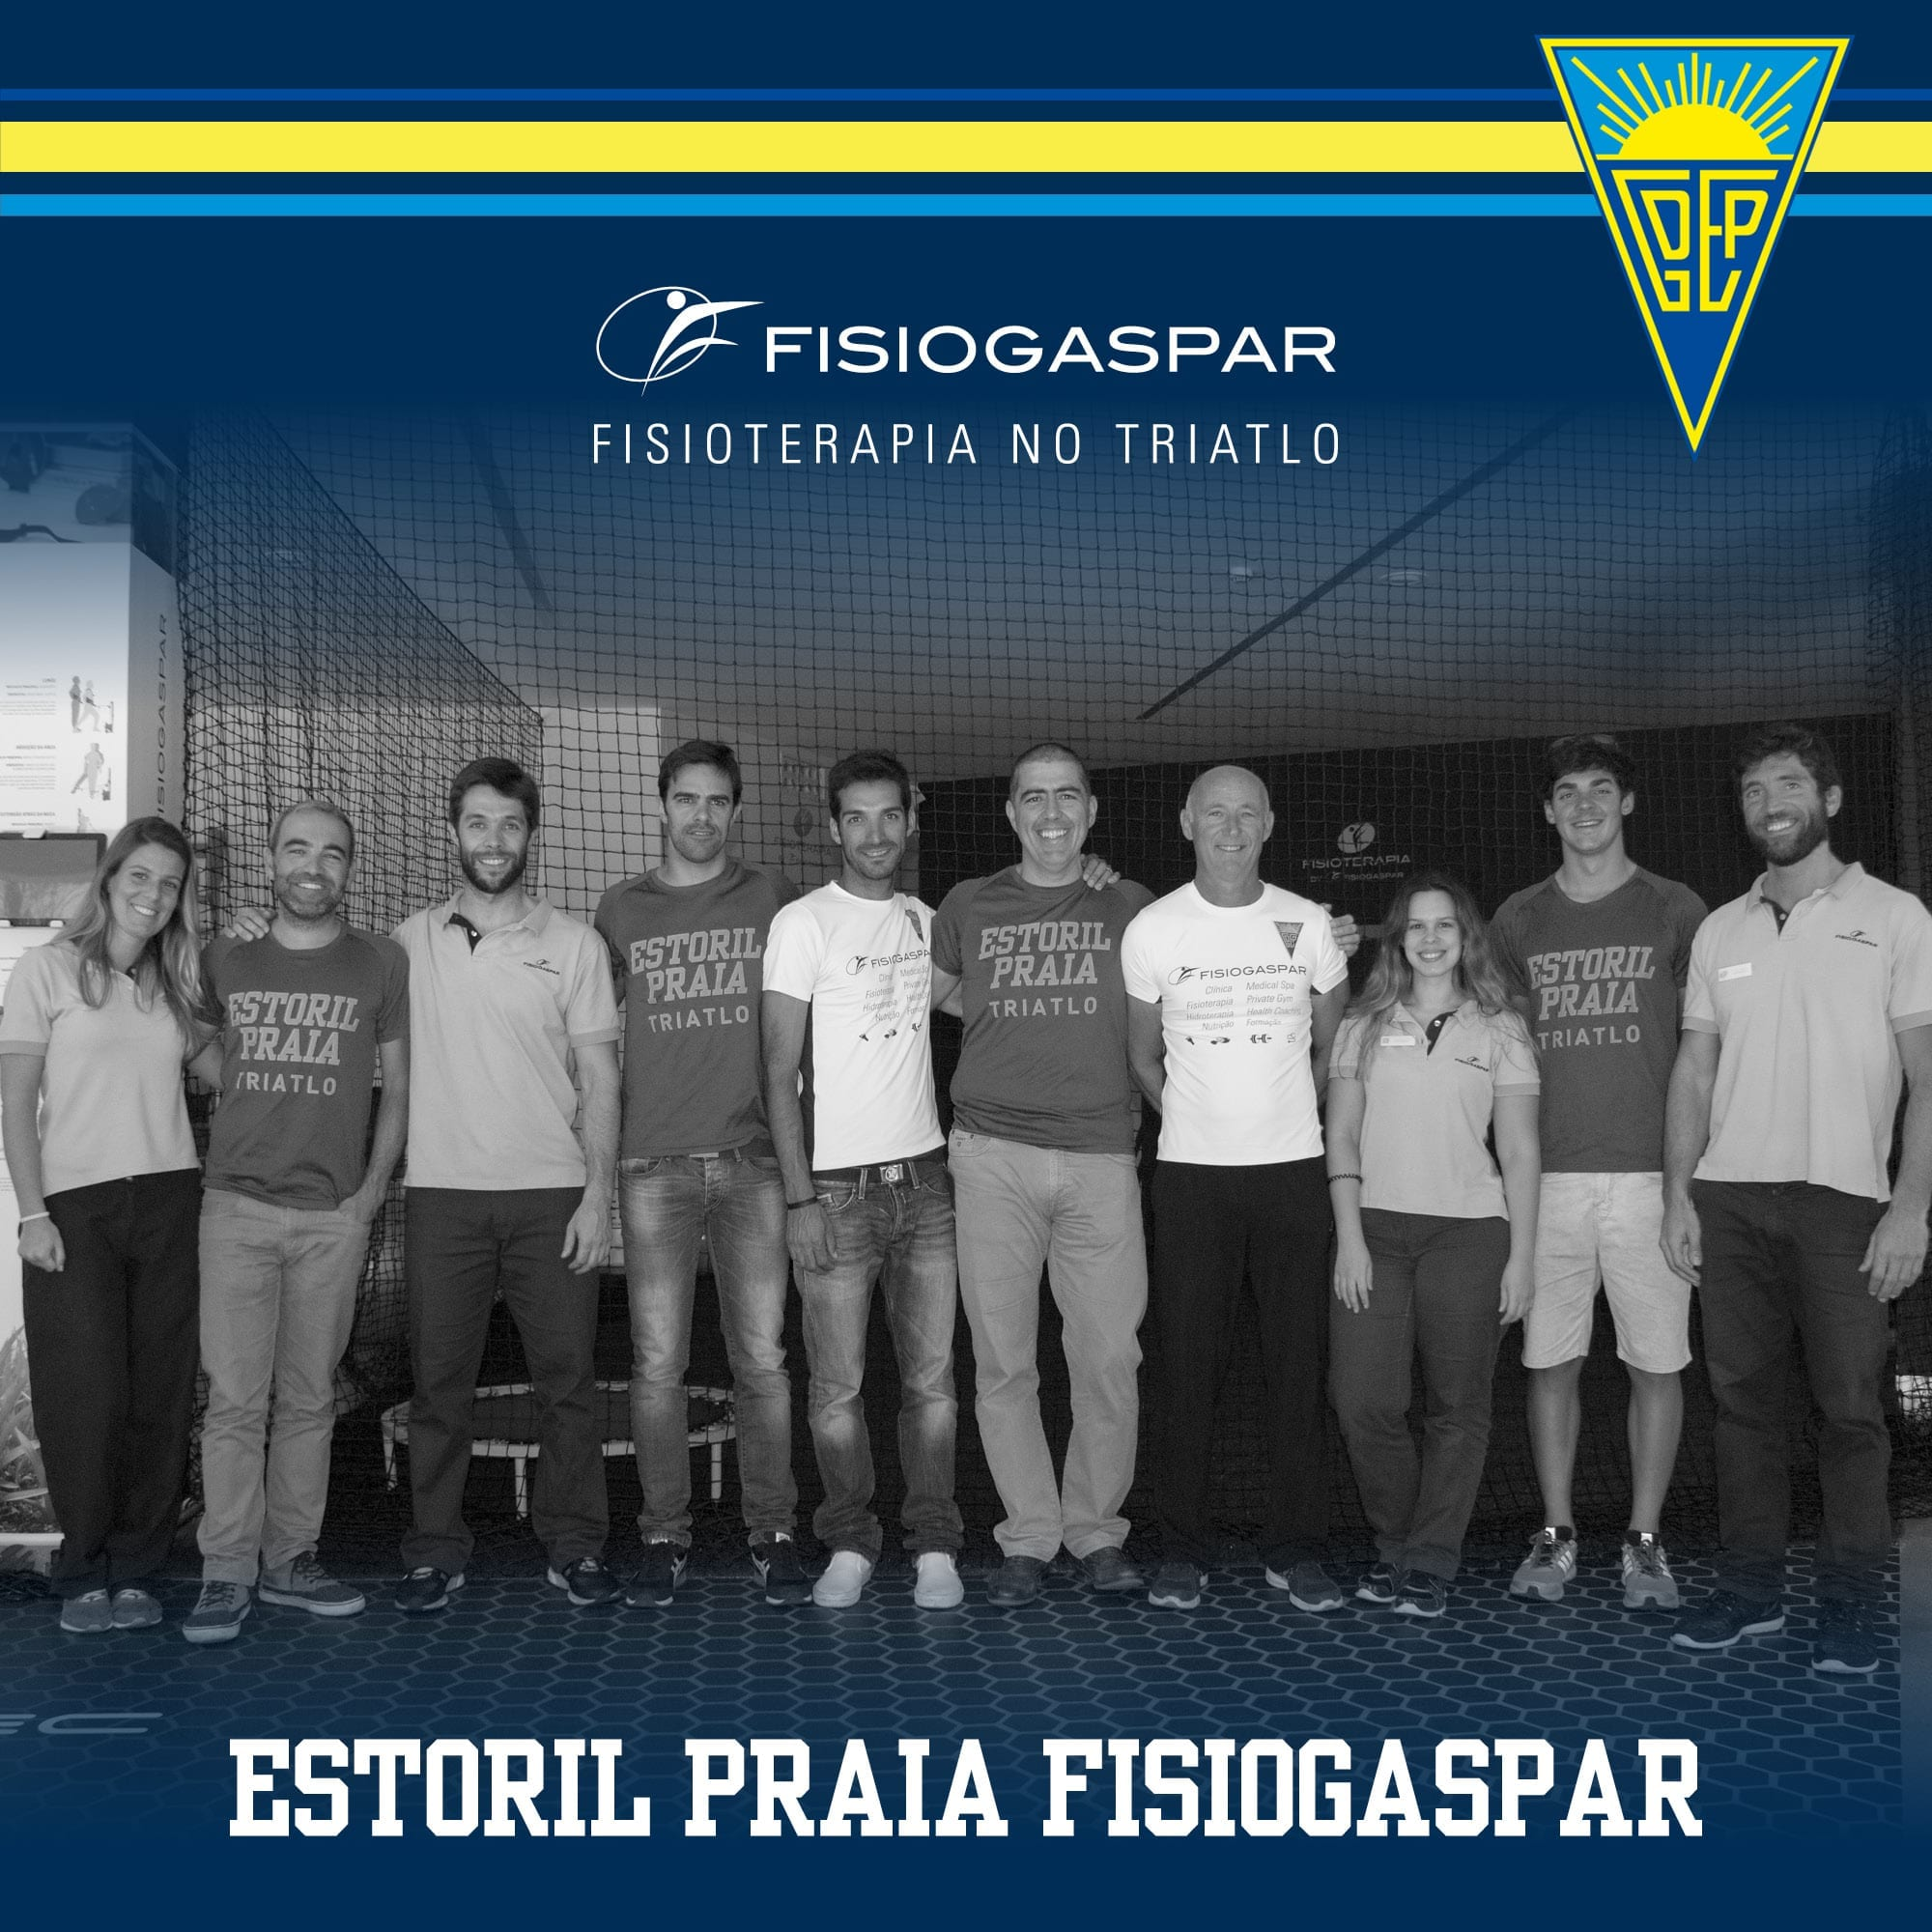 Estoril Praia e Fisiogaspar juntos no triatlo